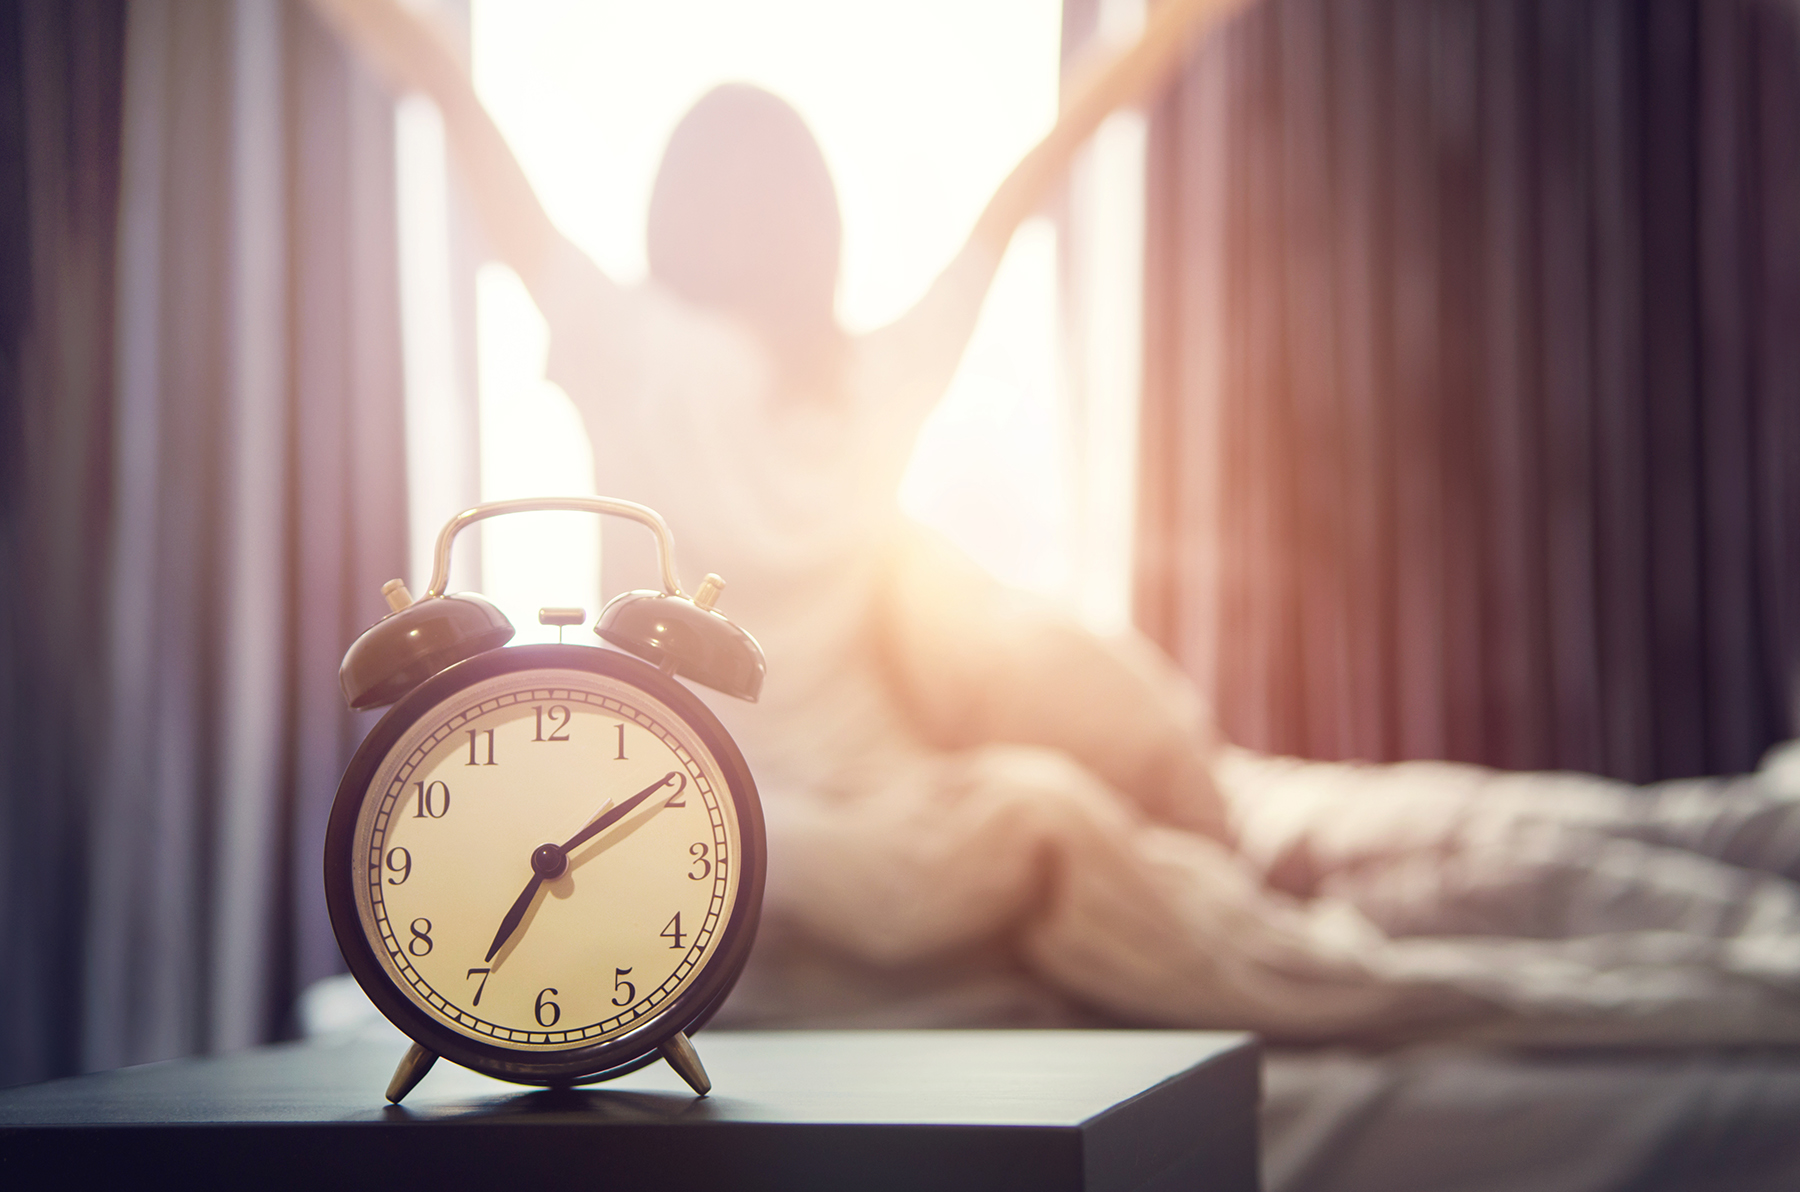 Woman waking up, alarm clock in foreground